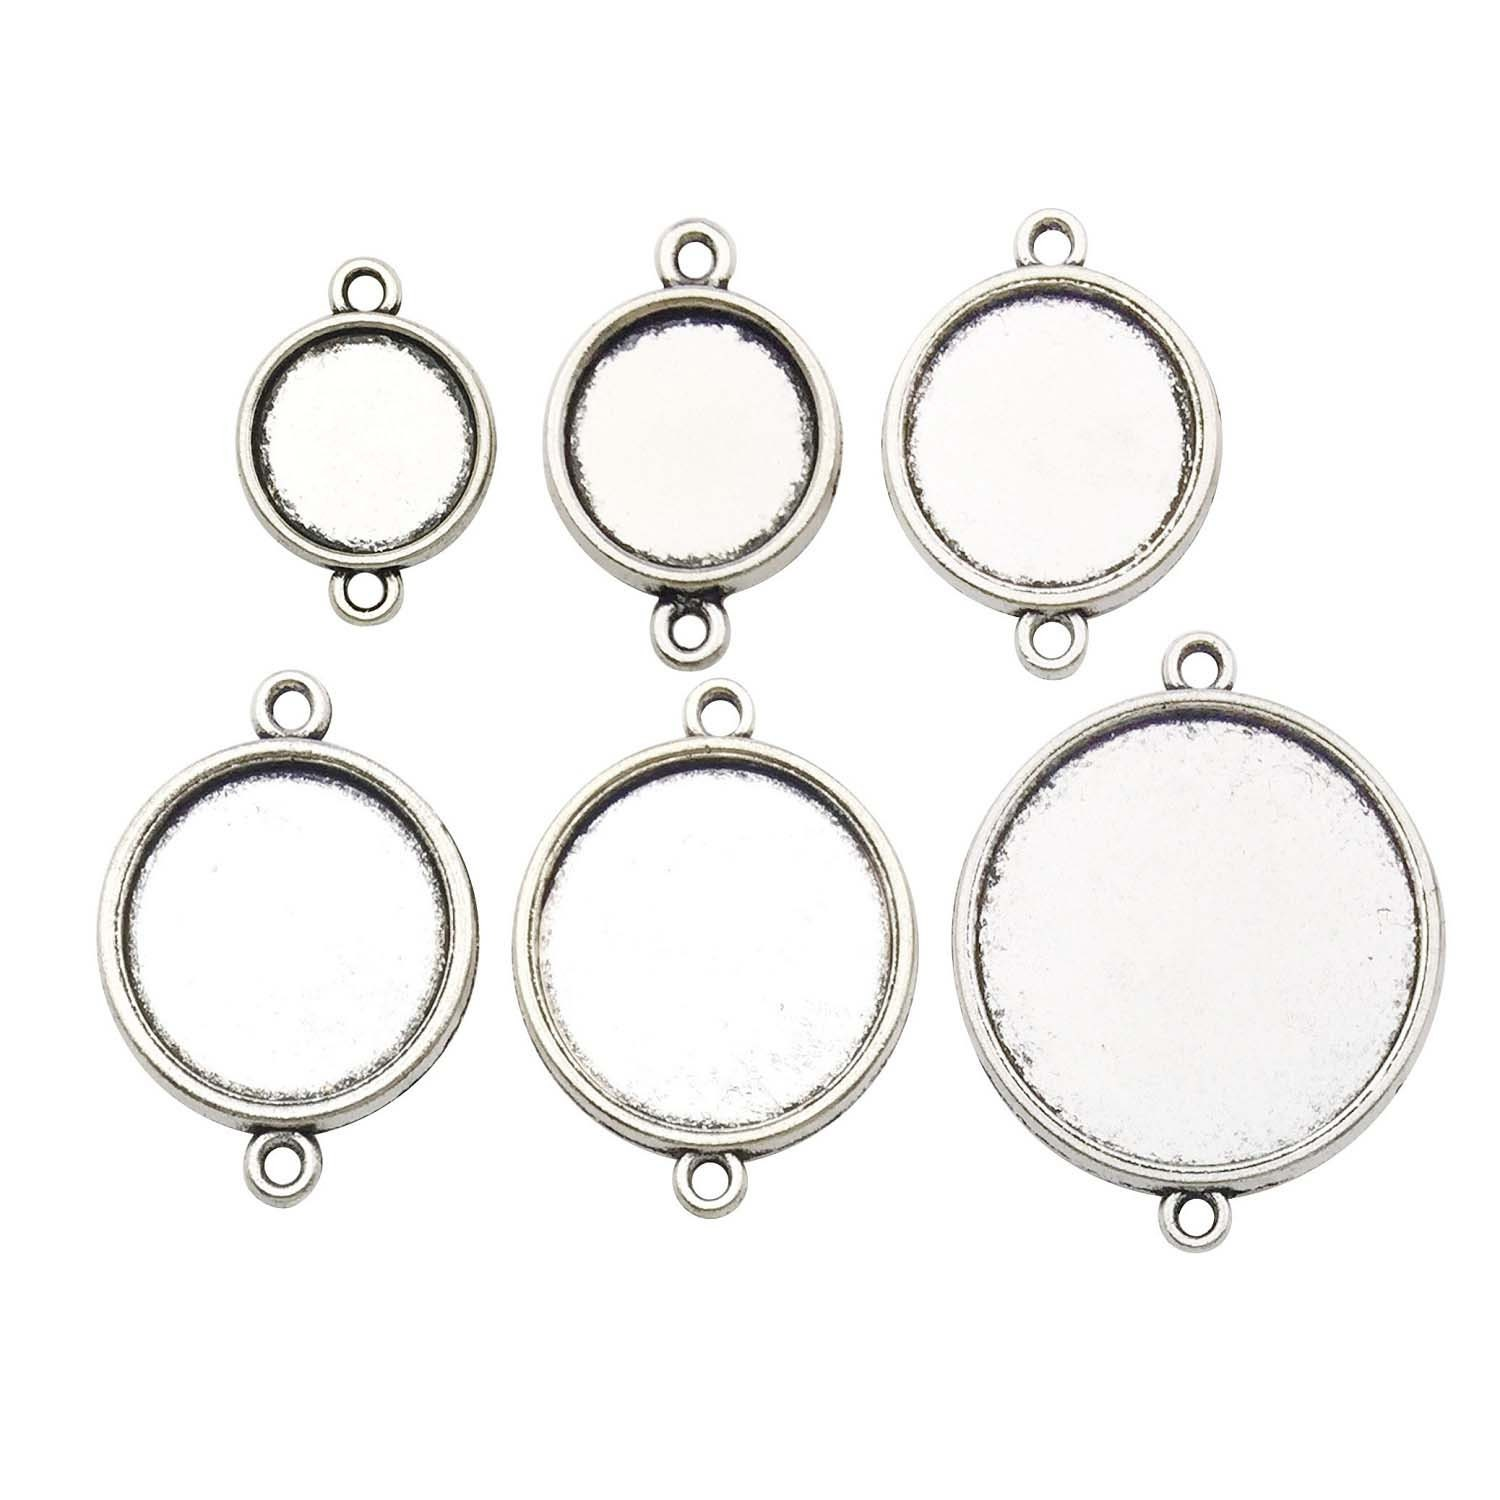 10 pcs 12mm Round Double sided Cabochon Trays Antique Silver Buy settings or kit